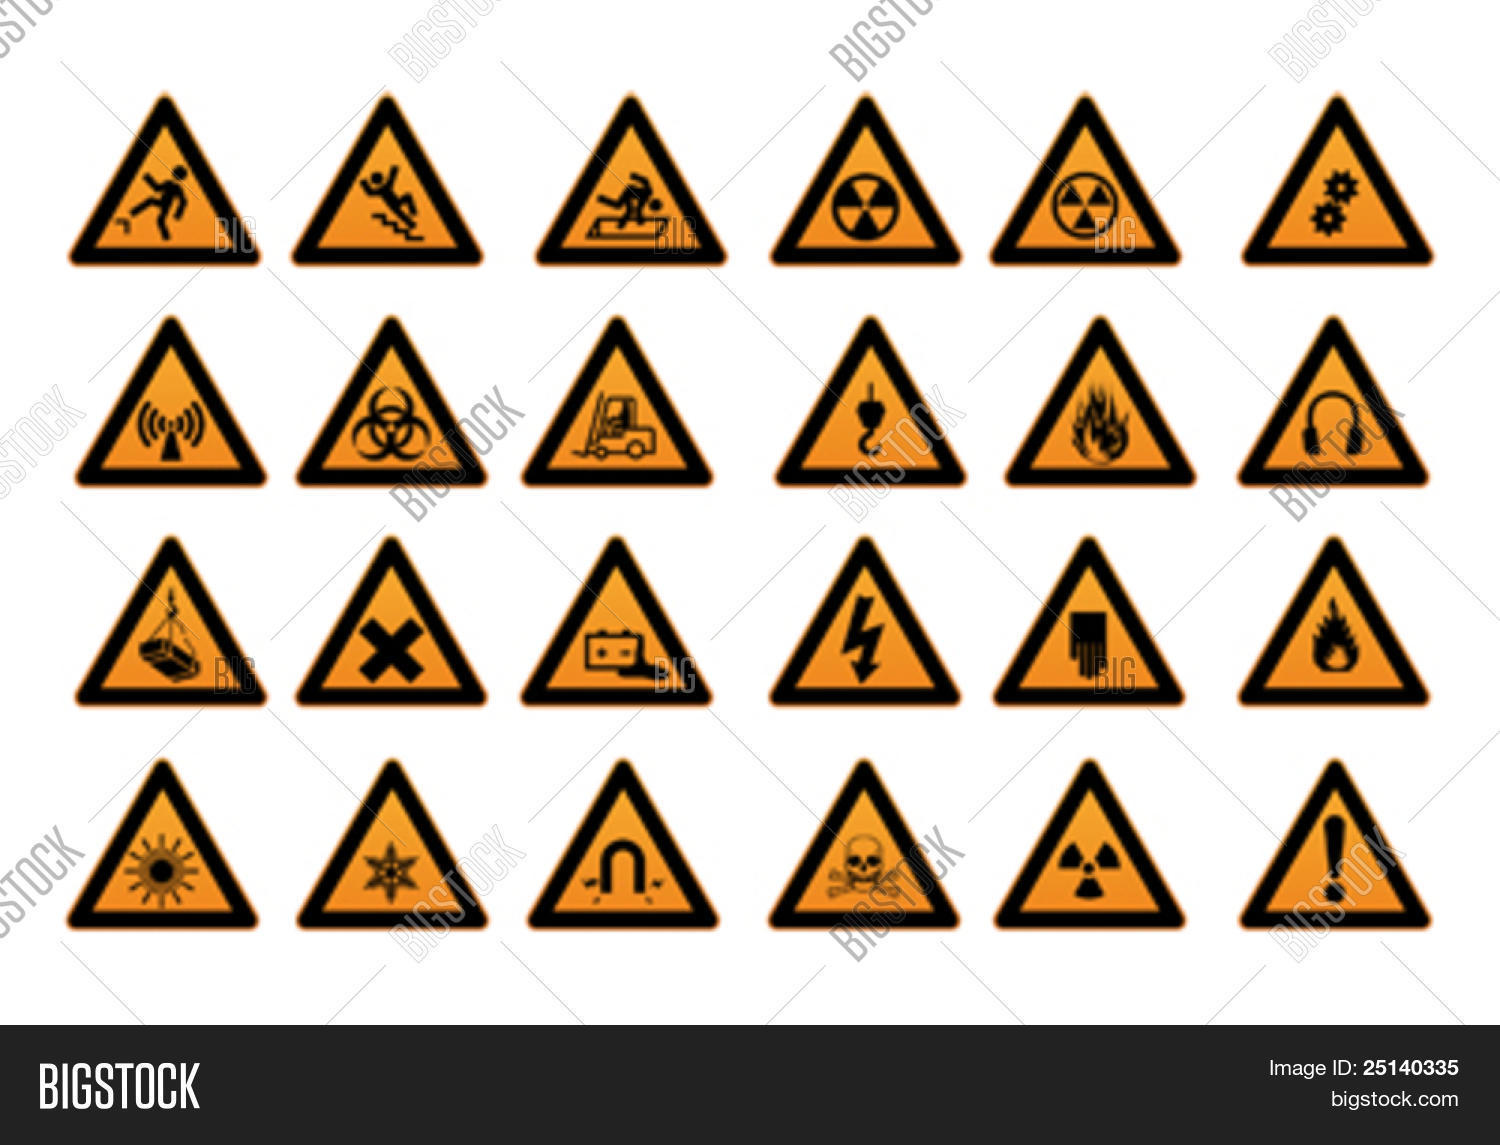 Work safety signs symbols vector photo bigstock work safety signs and symbols buycottarizona Choice Image